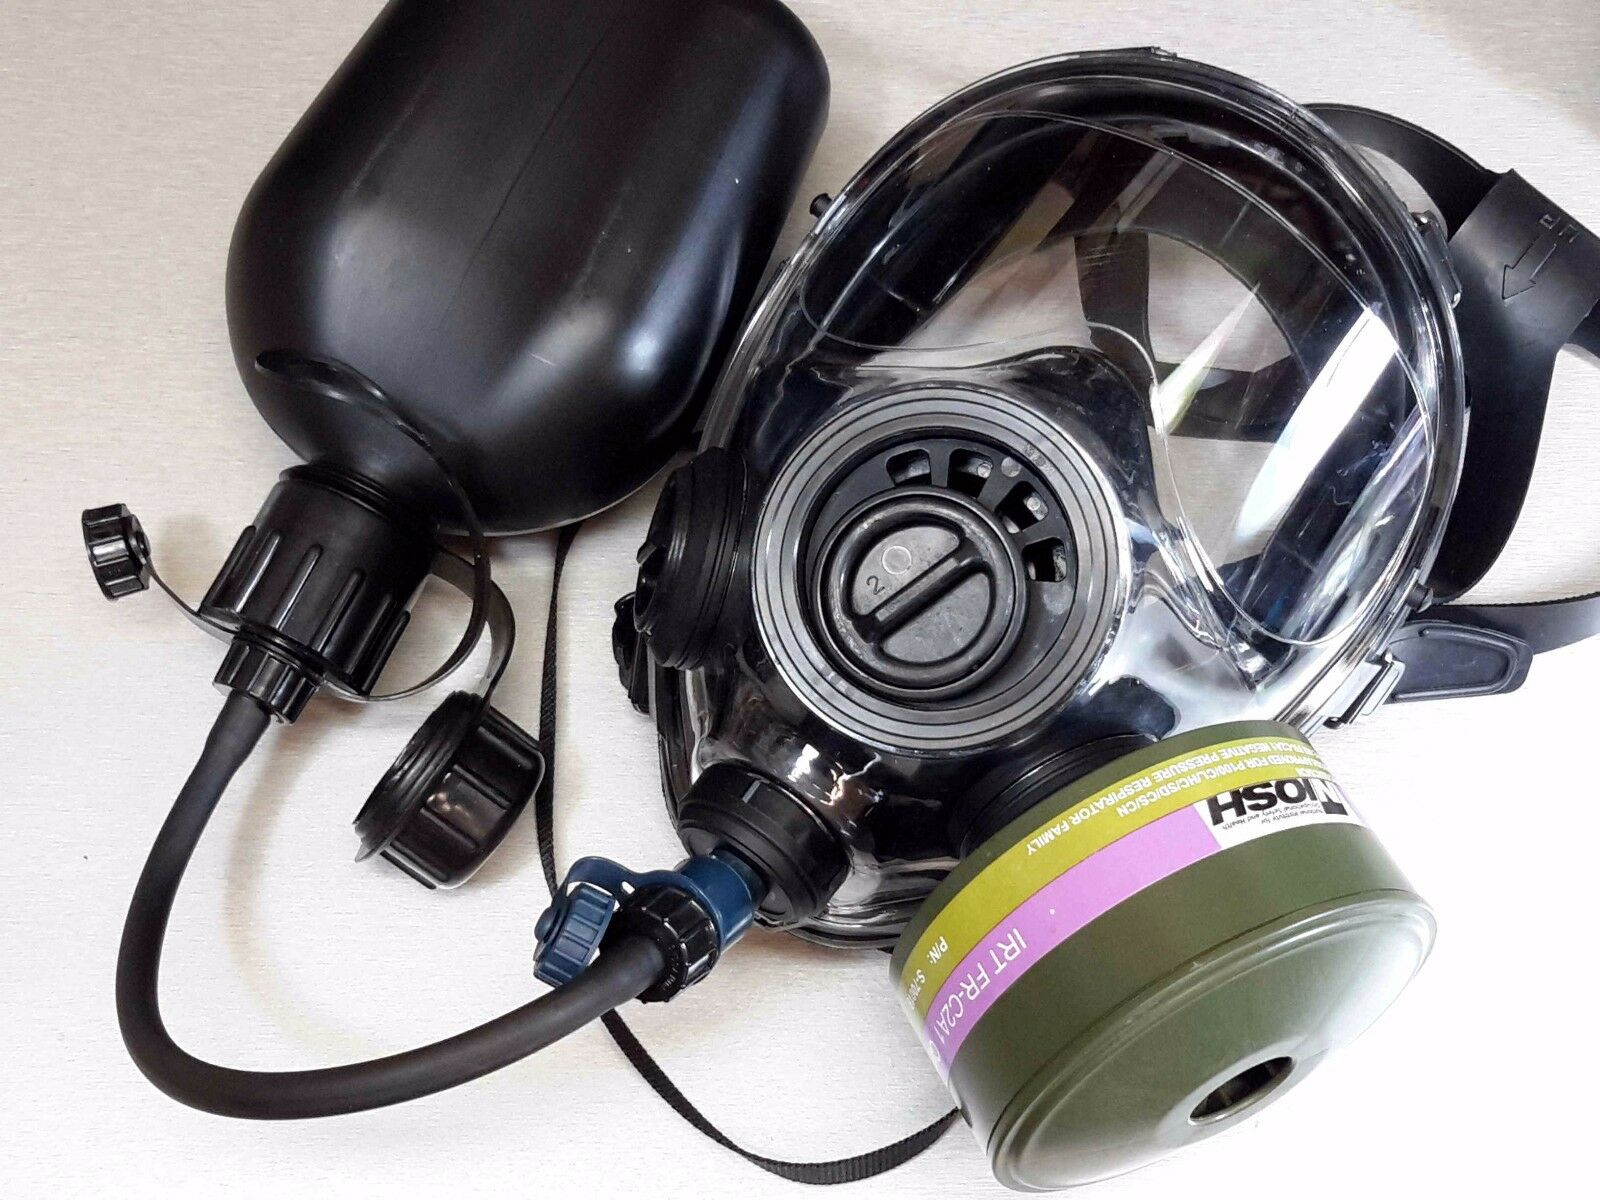 40mm NATO Gas Mask SGE INFINITY w Drink System & CBRN Approved Filter xd 06 2024